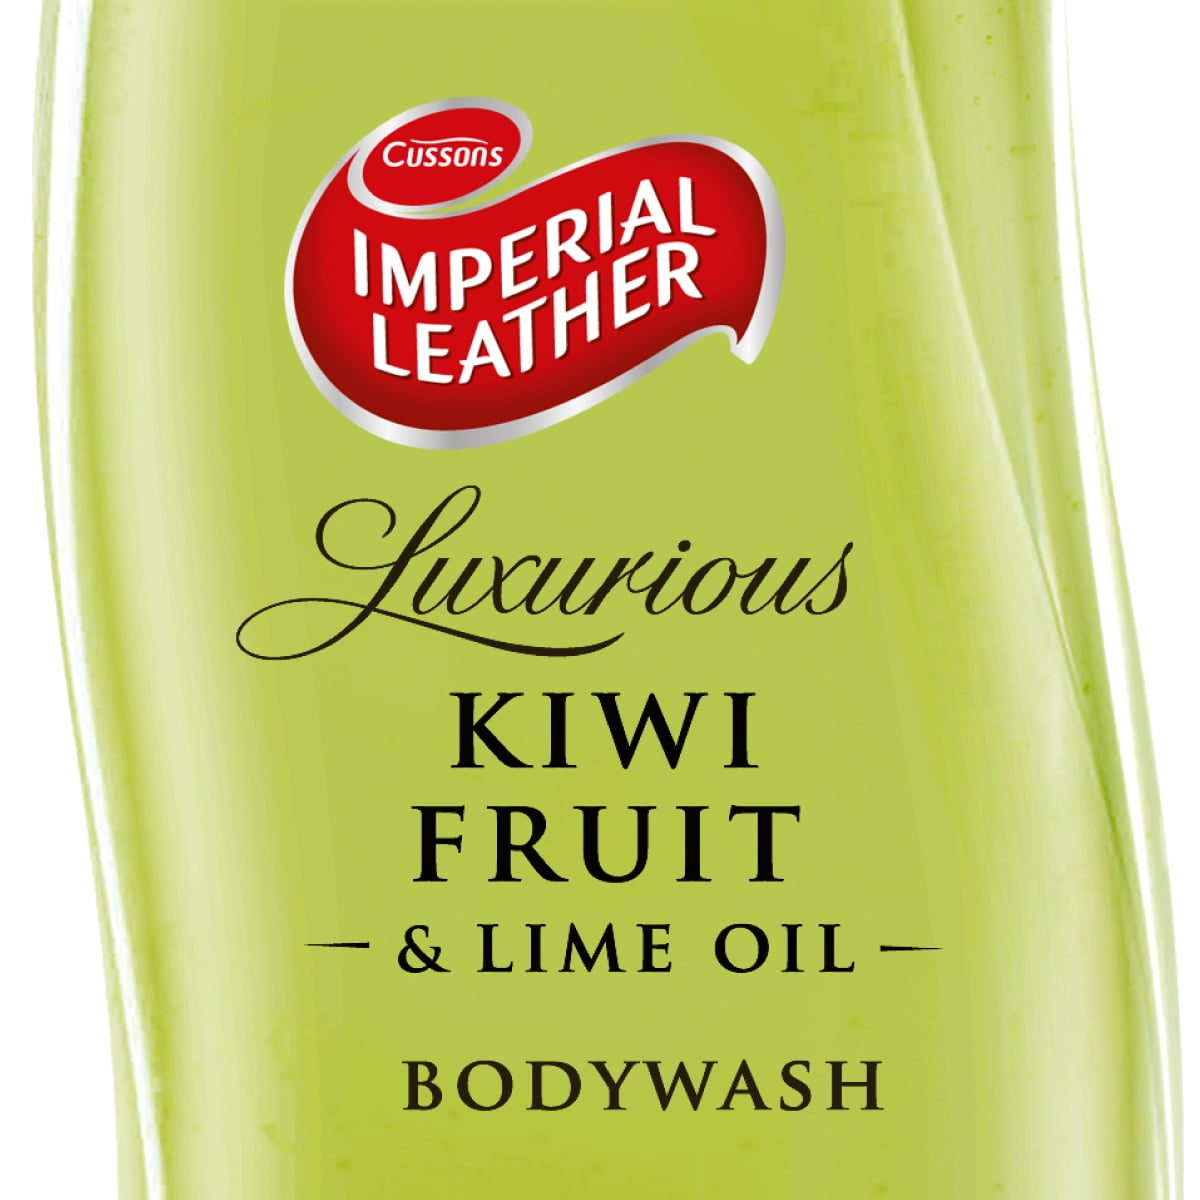 Davidson Branding FMCG PZ Cussons Imperial Leather